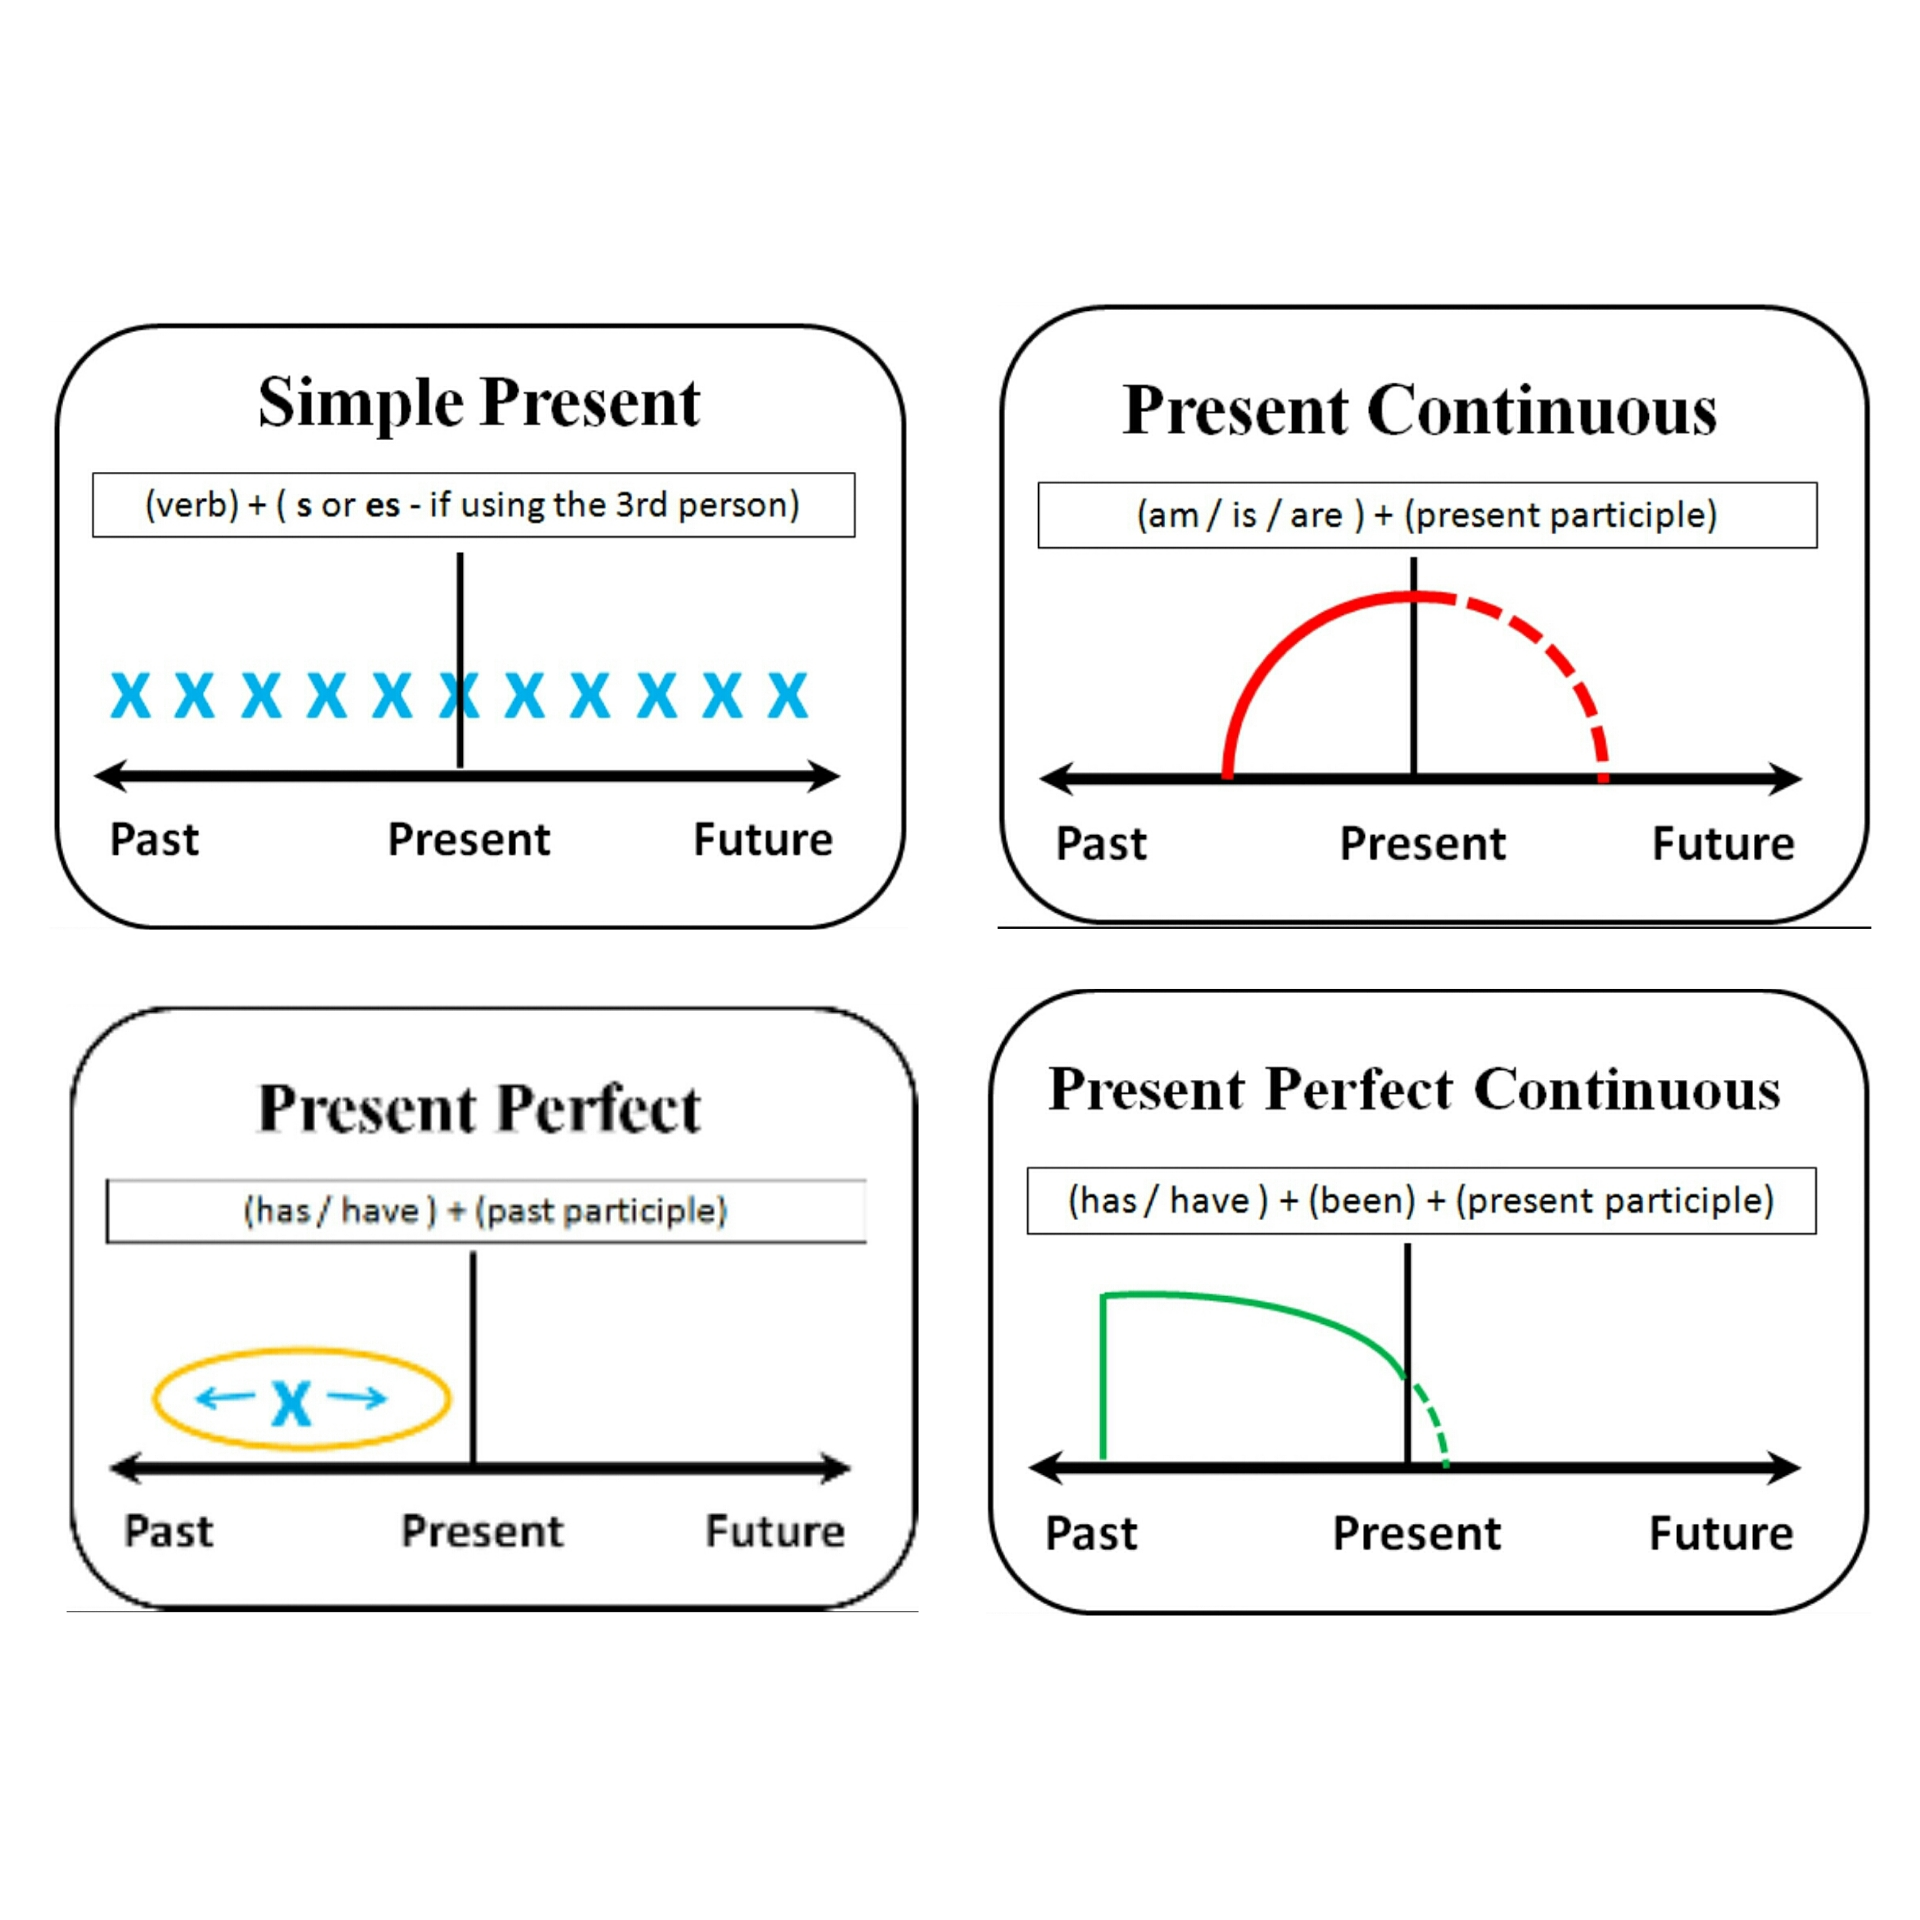 Diagram of tenses present english for life ccuart Images